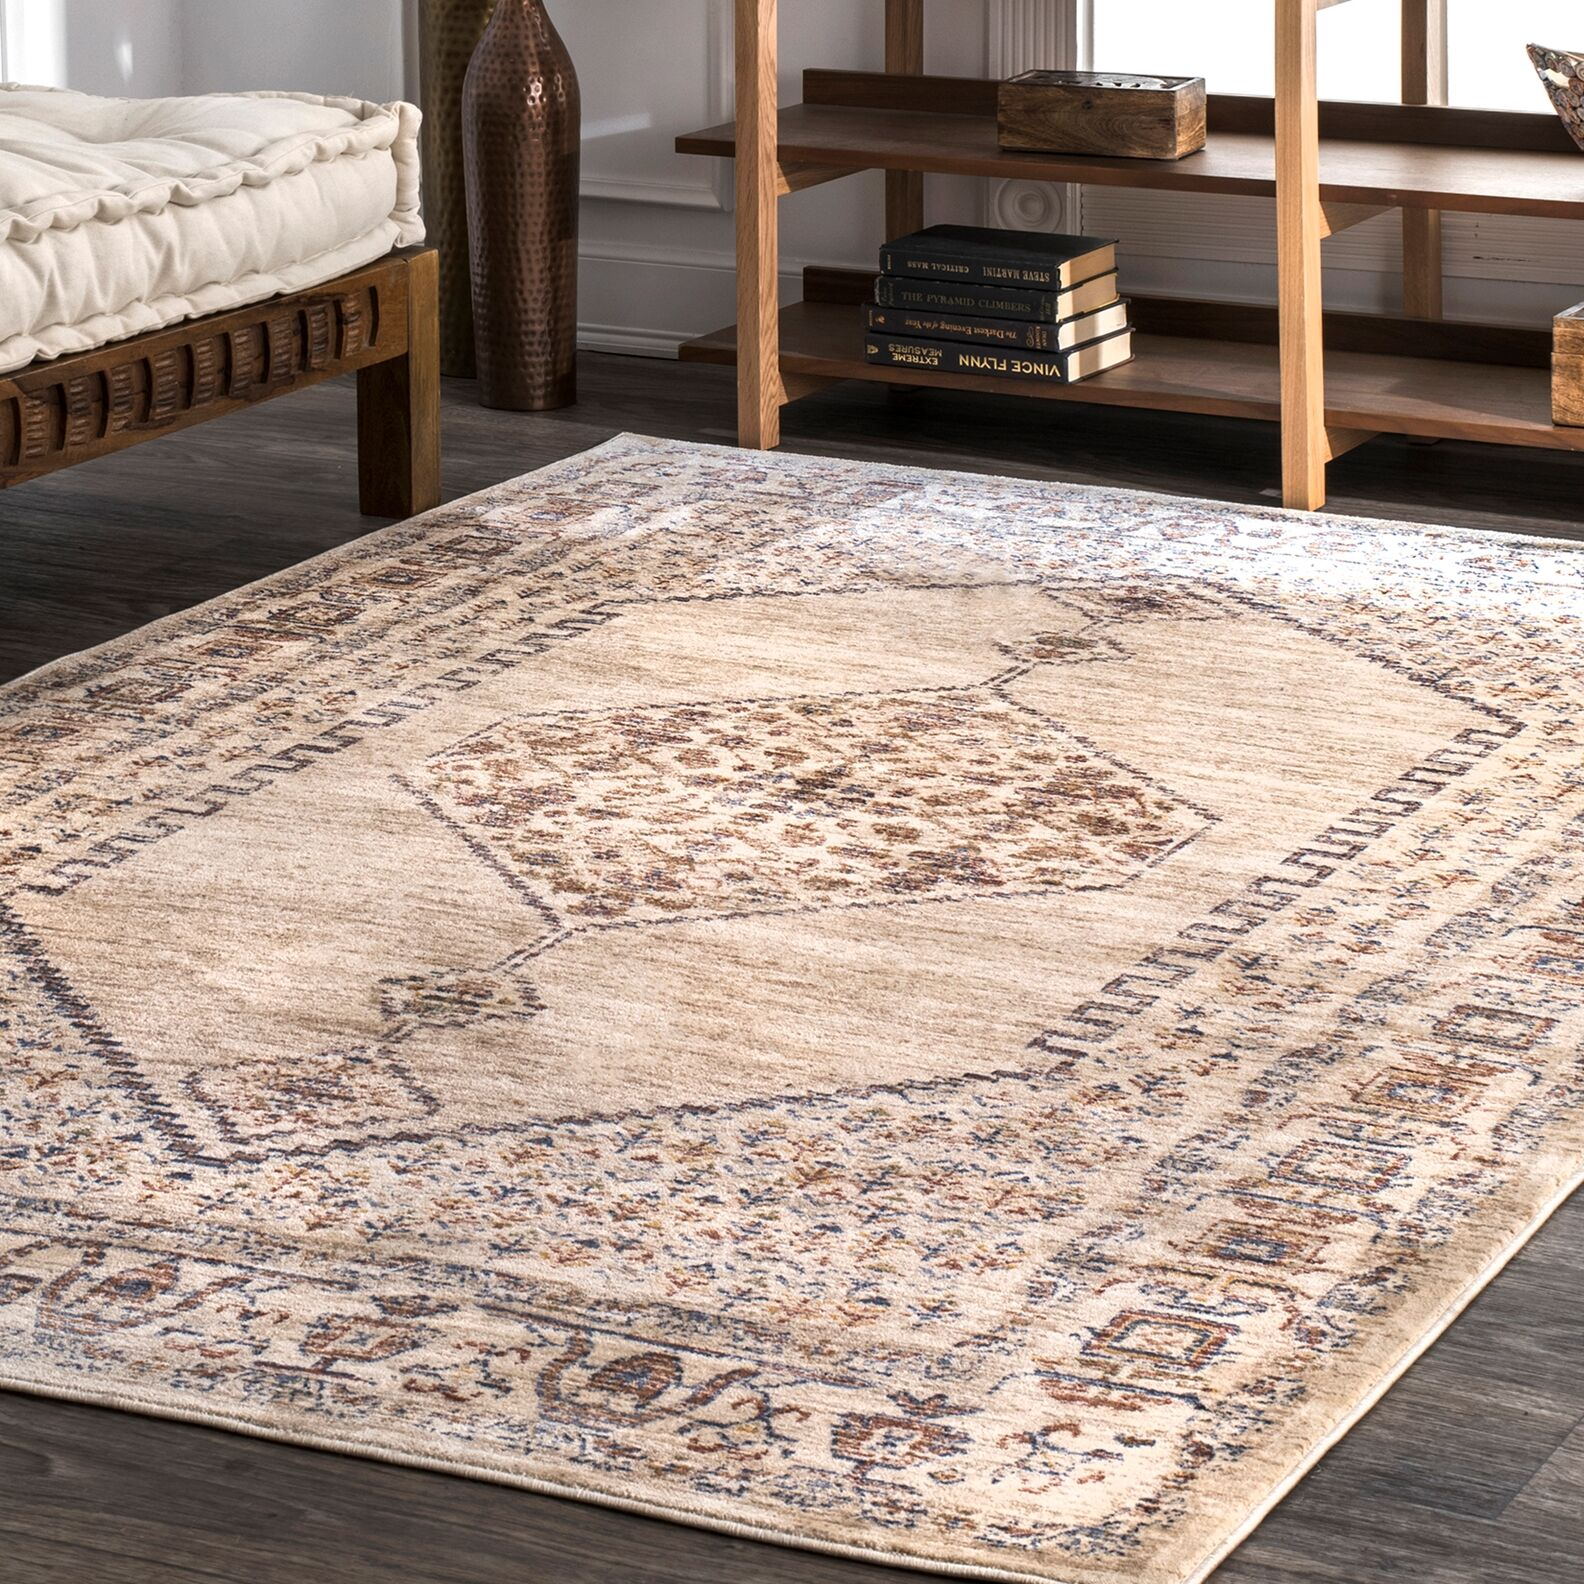 Ferriera Beige/Blue Area Rug Rug Size: Rectangle 4' x 6'